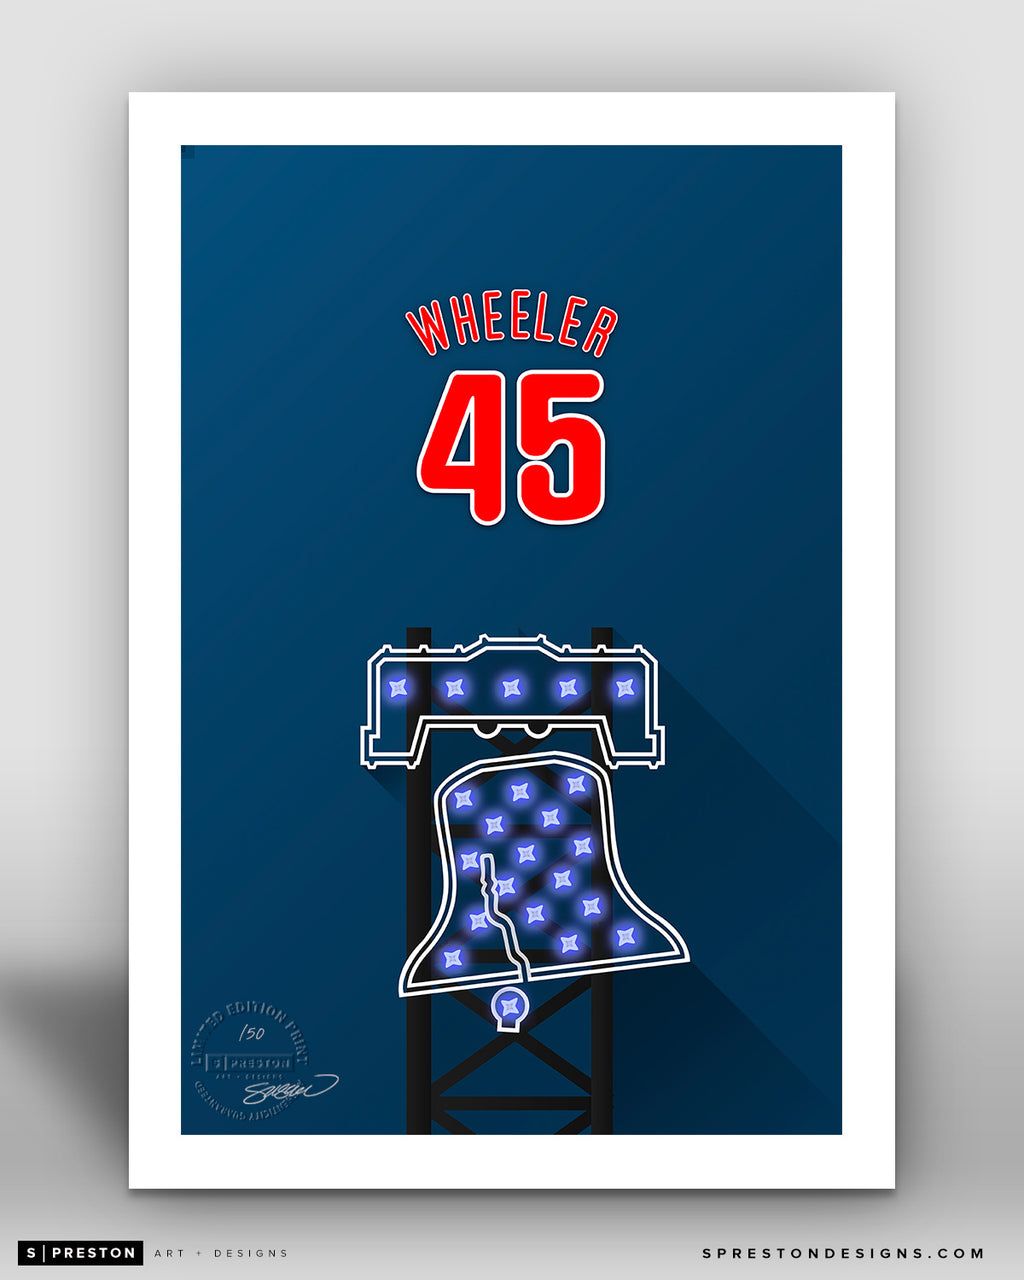 Minimalist Citizens Bank Park - Player Series - Zack Wheeler - Philadelphia Phillies - S. Preston